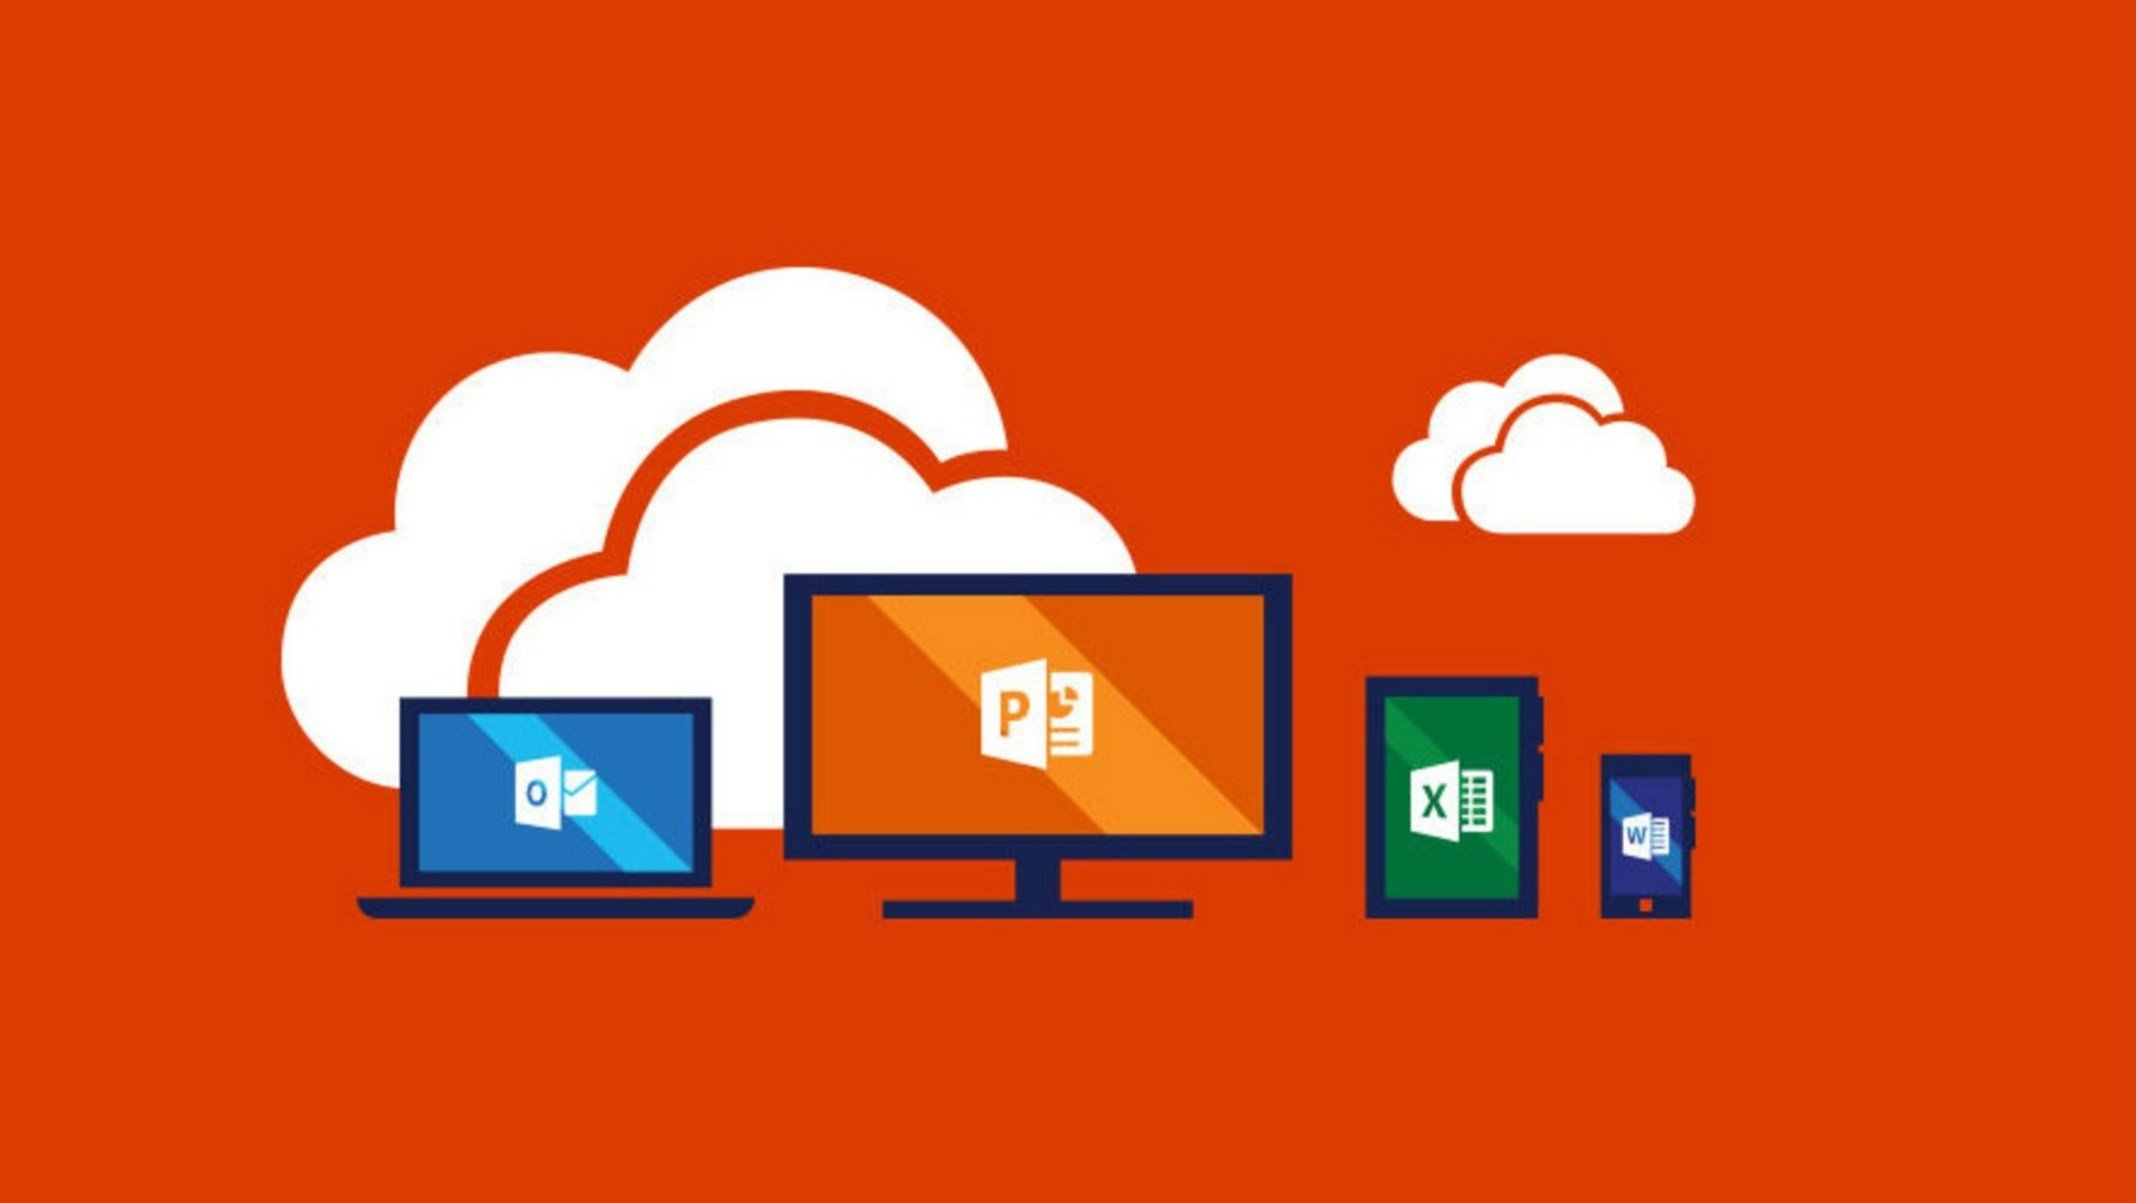 Office 365 Services Hit by Outage, Outlook, Skype, OneDrive Down